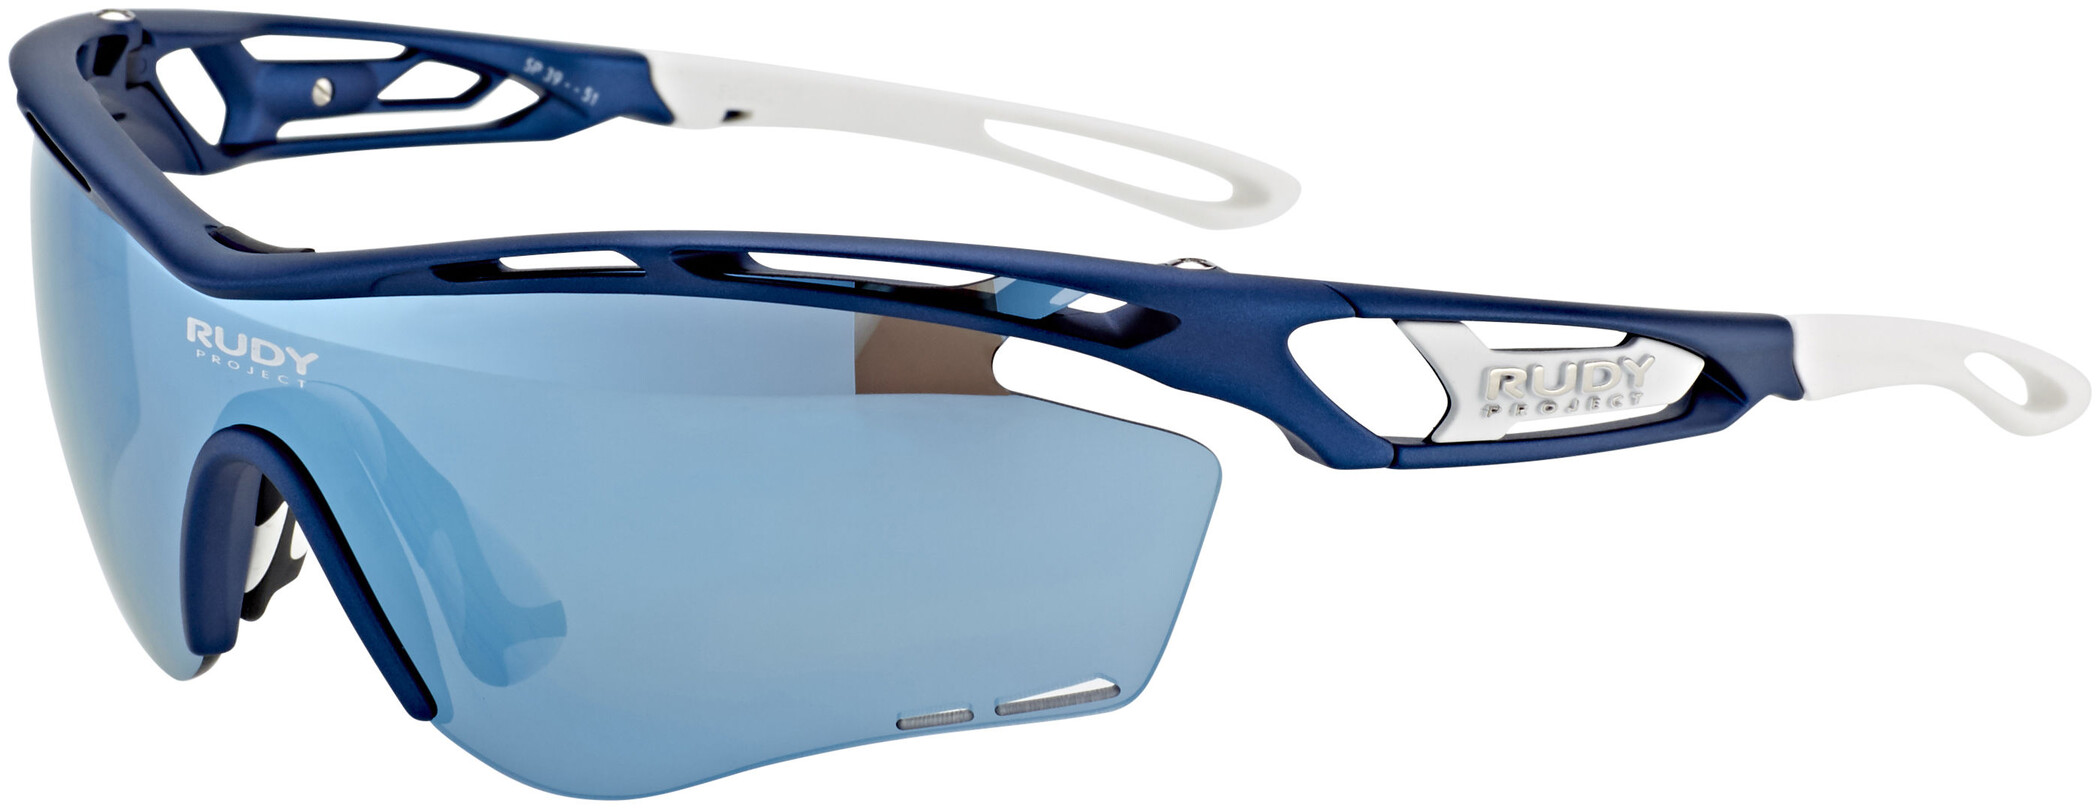 46f7d59d5f Rudy Project Tralyx Glasses Blue Metal Matte - RP Optics Multilaser Azur.jpg